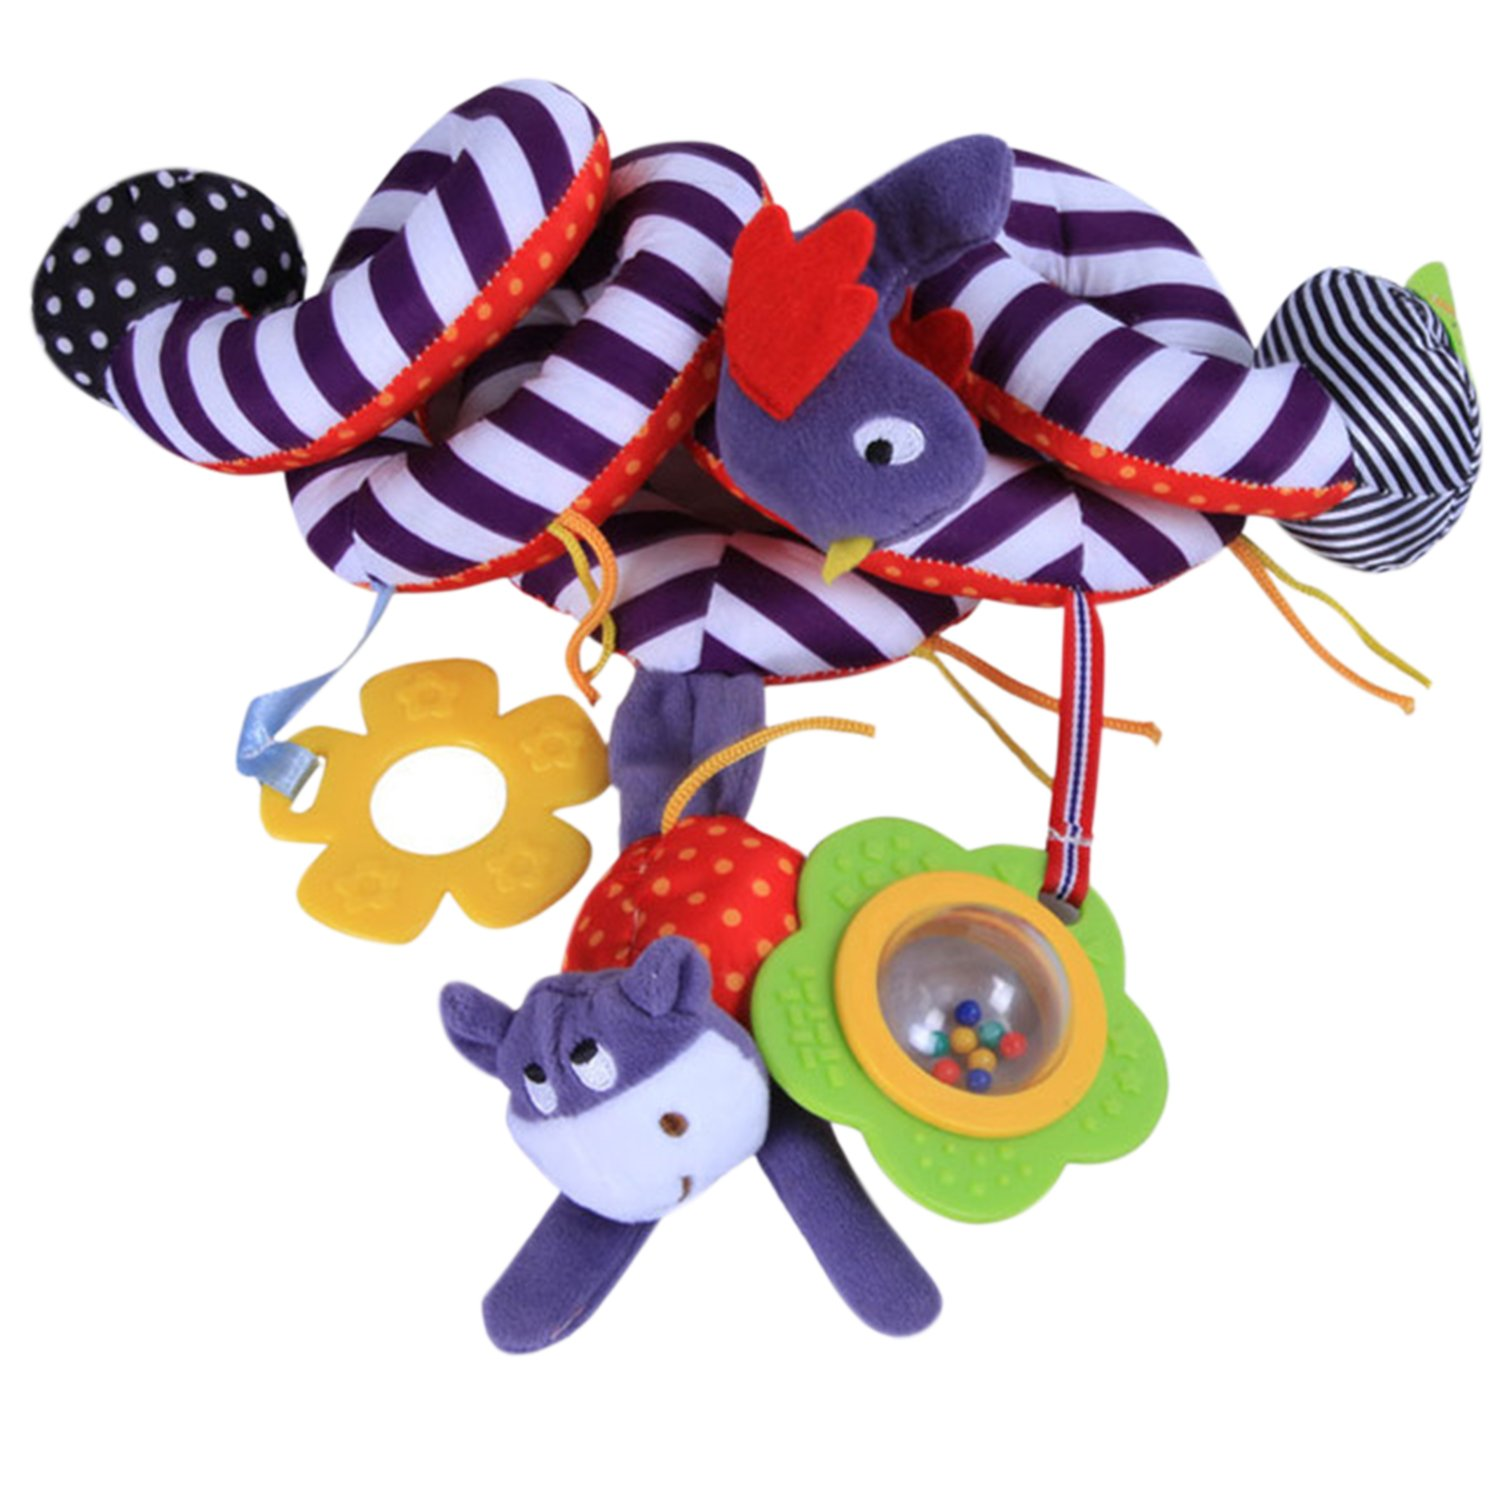 Colorful Hanging Spiral Toy Baby Children Twisty Curly Musical Cartoon Gift Toys Hanging on Pram Pushchairs Car Seat Cot De feuilles